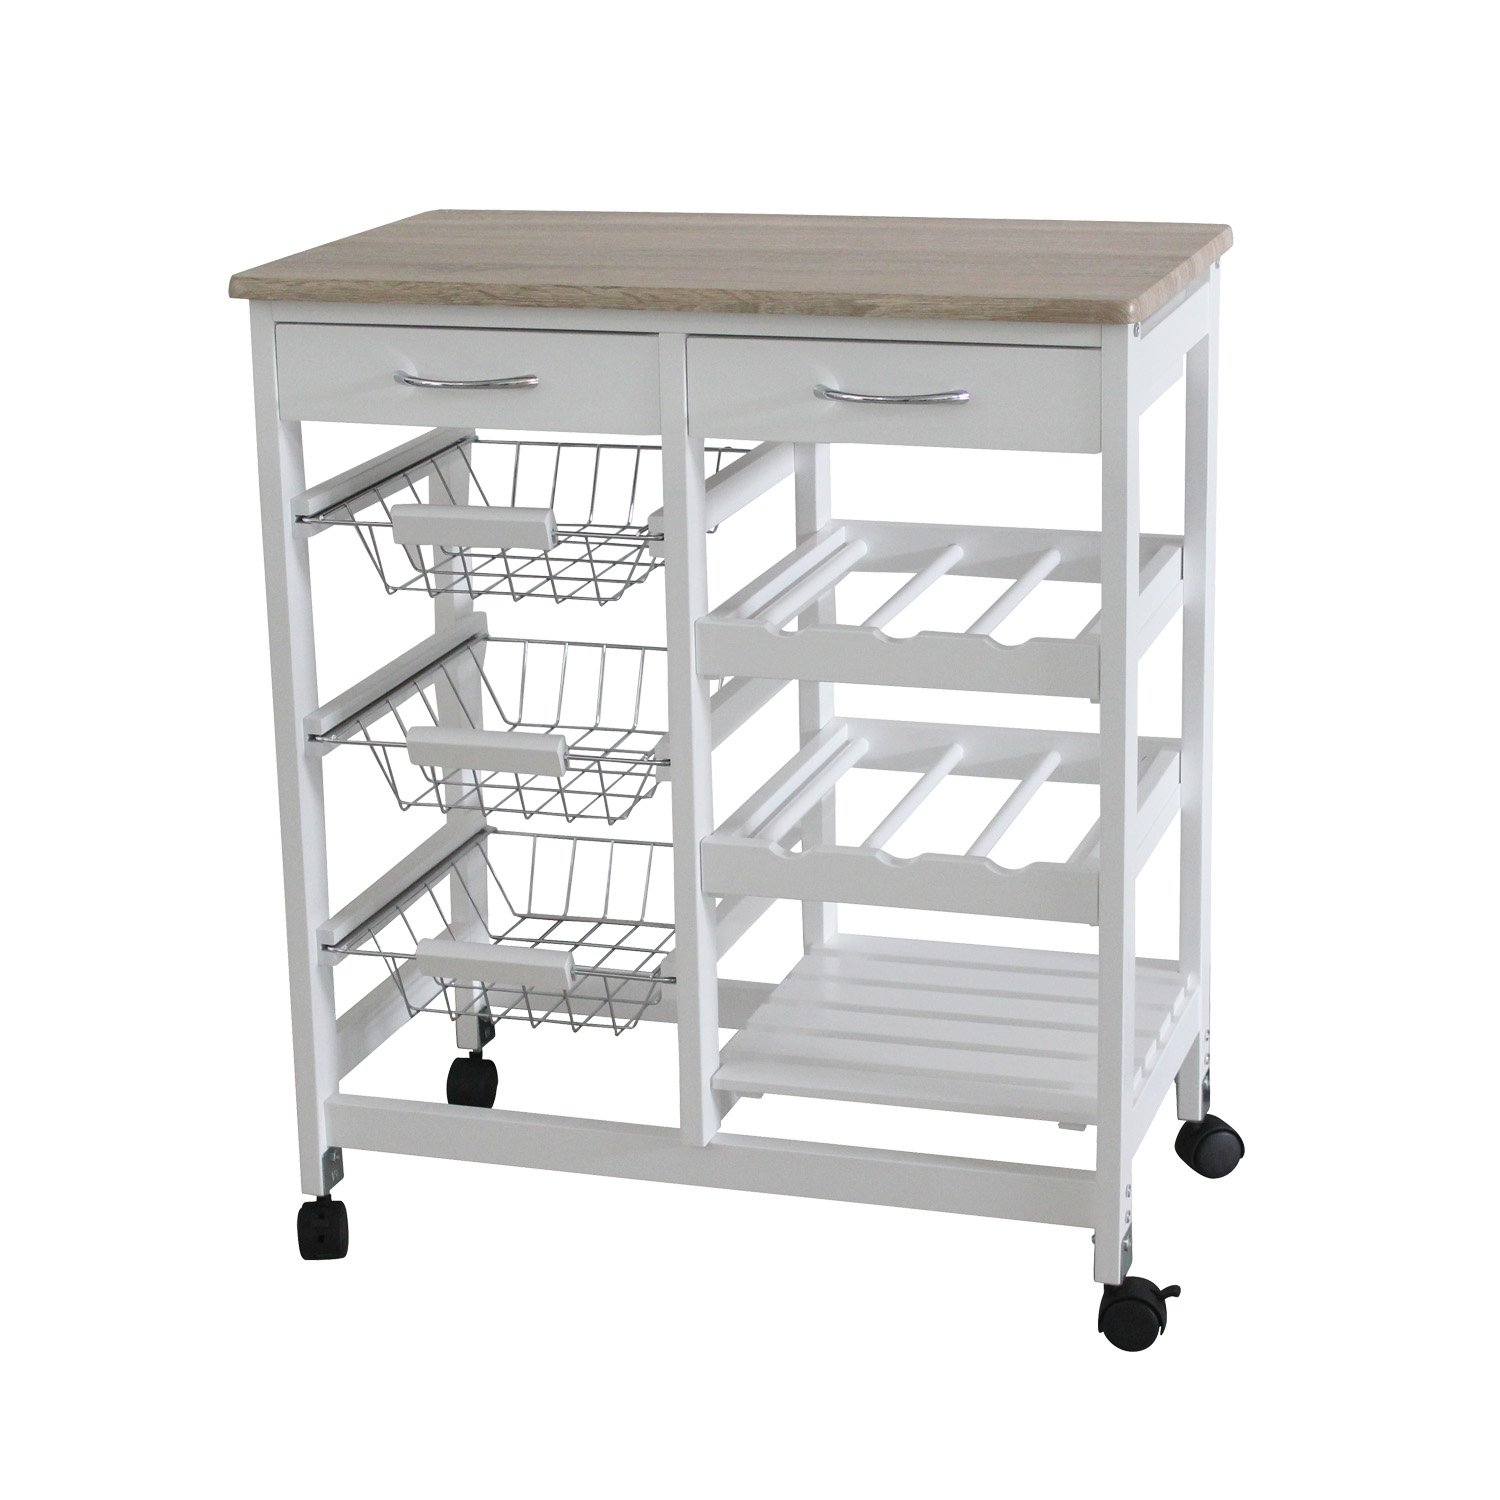 Superieur Amazon.com: Home Basics Portable Kitchen Storage Island Trolley Cart With 2  Drawers White And Oak: Home U0026 Kitchen